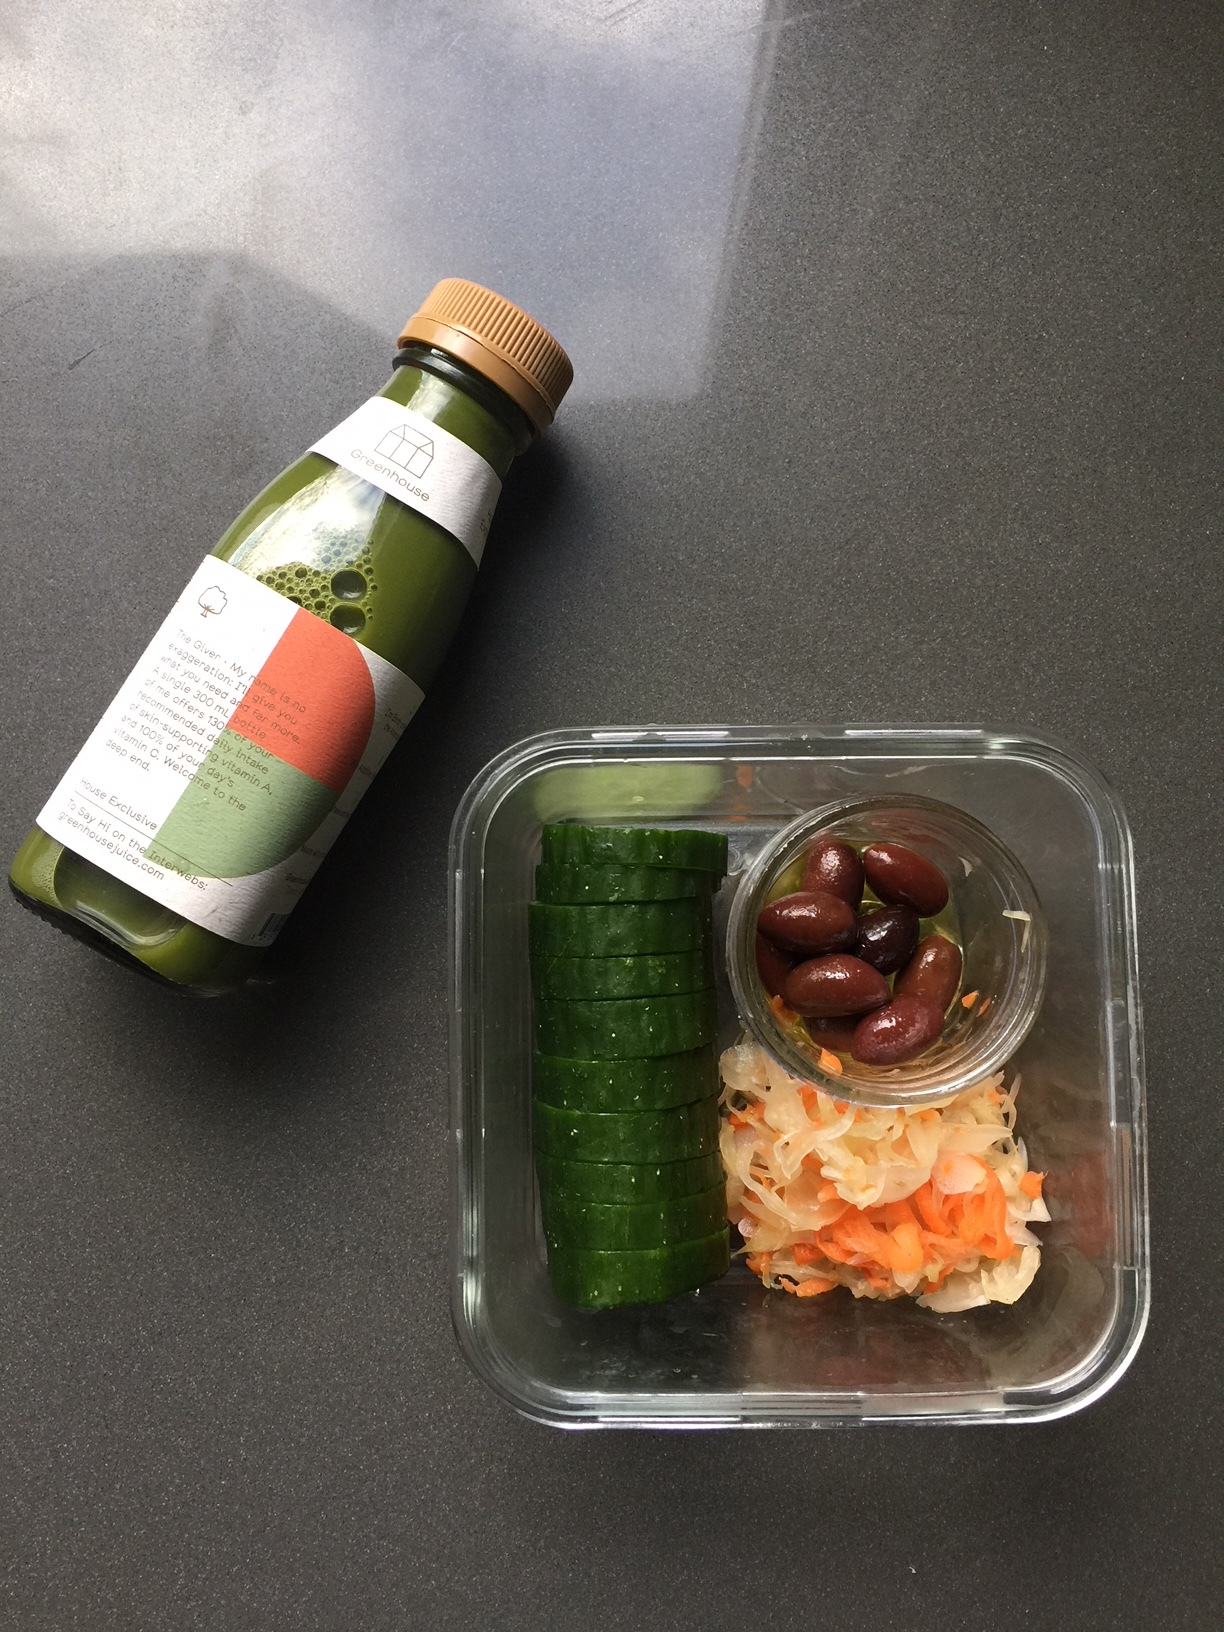 Day 3: Part of lunch- kalamon olives, cucumber, kraut, and a super green juice.